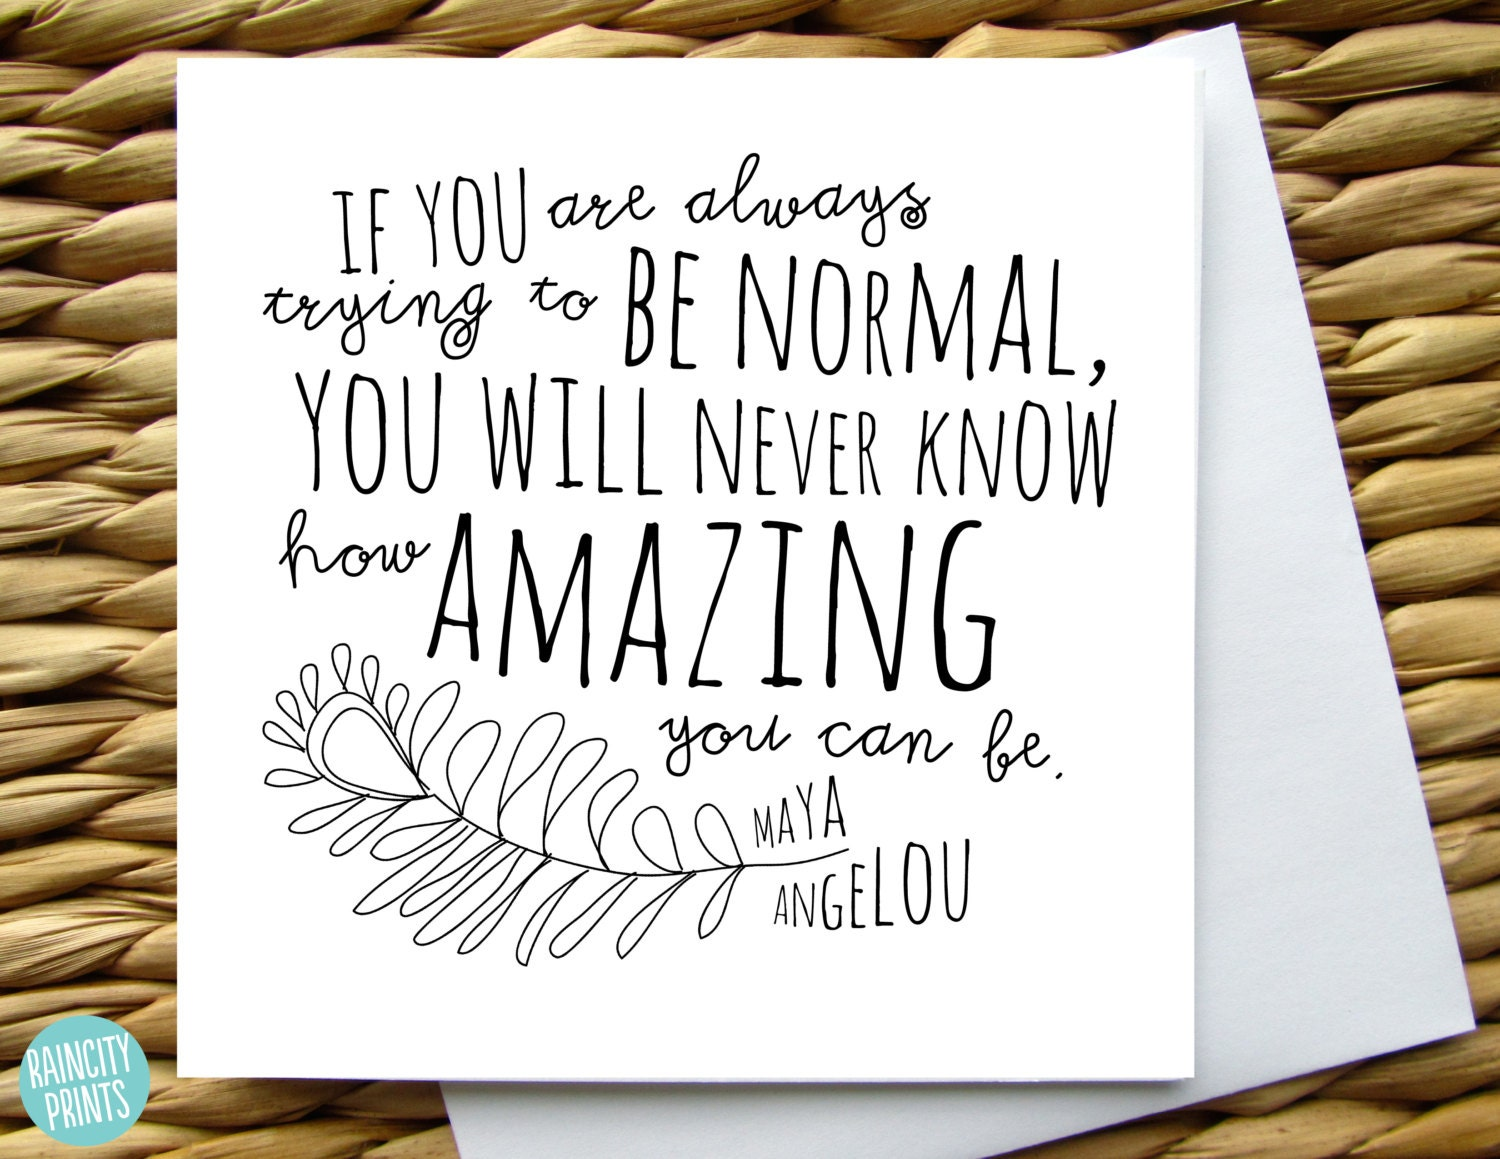 Maya angelou how amazing you can be greeting card zoom kristyandbryce Images